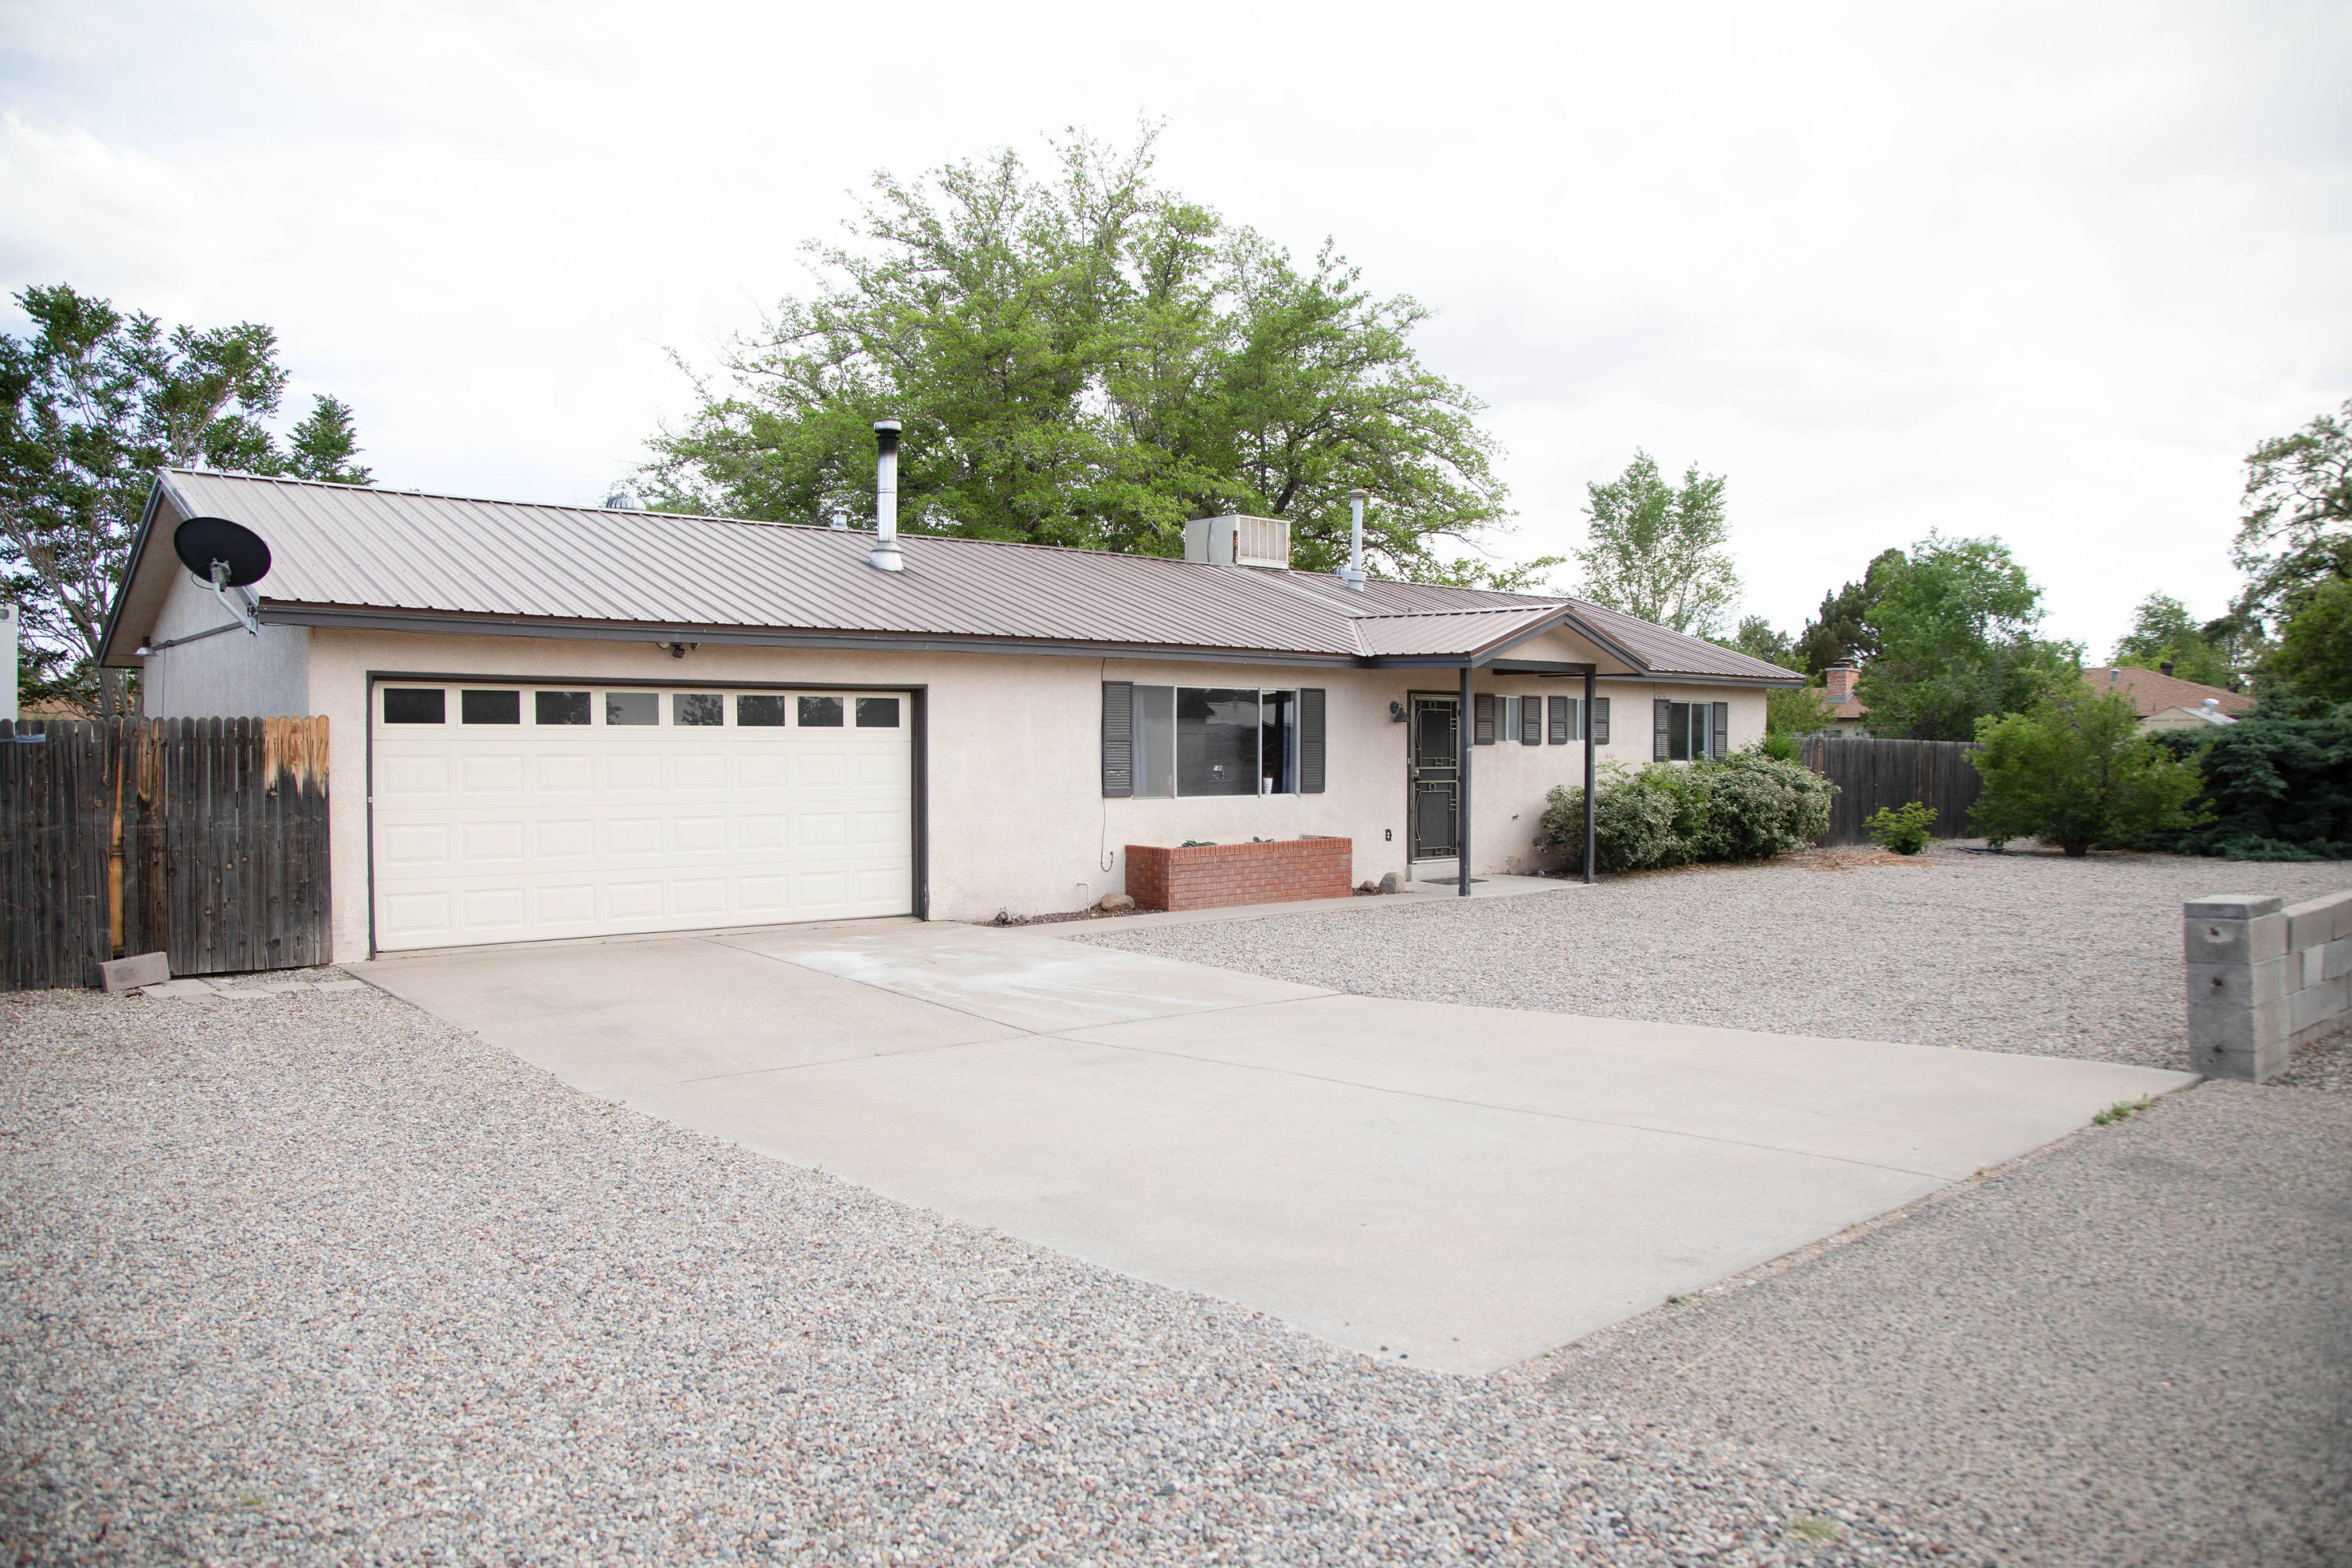 Great home, huge lot, in a great location in the heart of Rio Rancho. Close to Intel,shopping and restaurants. This home sits on a 1/2 acre with tons of possibilities. This home features a spacious living area with a wood burning stove. Open kitchen with granite countertops and breakfast nook with patio doors leading to a huge backyard. Yard is low maintenance with artificial grass and mature landscaping. Two nice sized bedrooms with walk-in closets, Two full baths, one in the master. The garage and laundry room are heated. There is a 12x24 building in the back that is perfect for a home office or home school area. It has electricity and a cooling unit. There is no HOA! Come and see this house before it's gone!